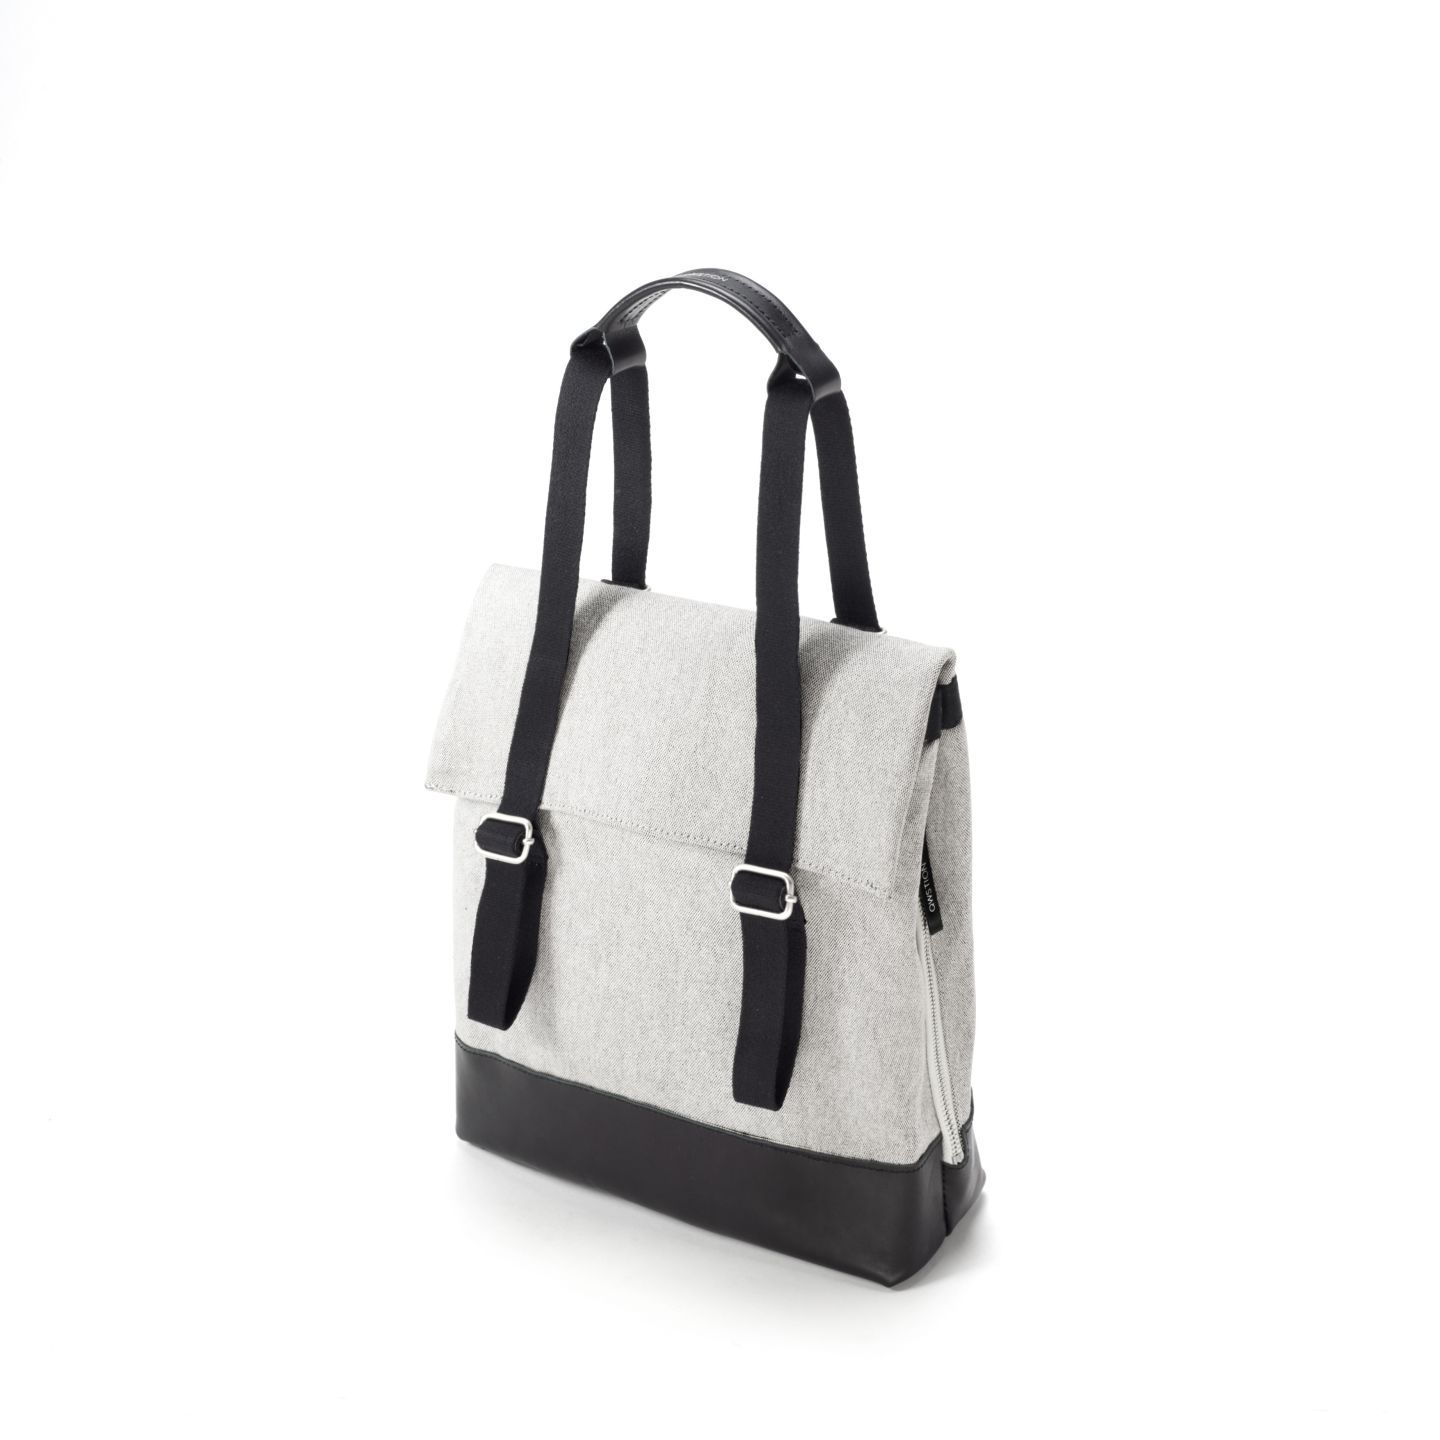 Photo of Small Tote Raw Blend Leather Canvas